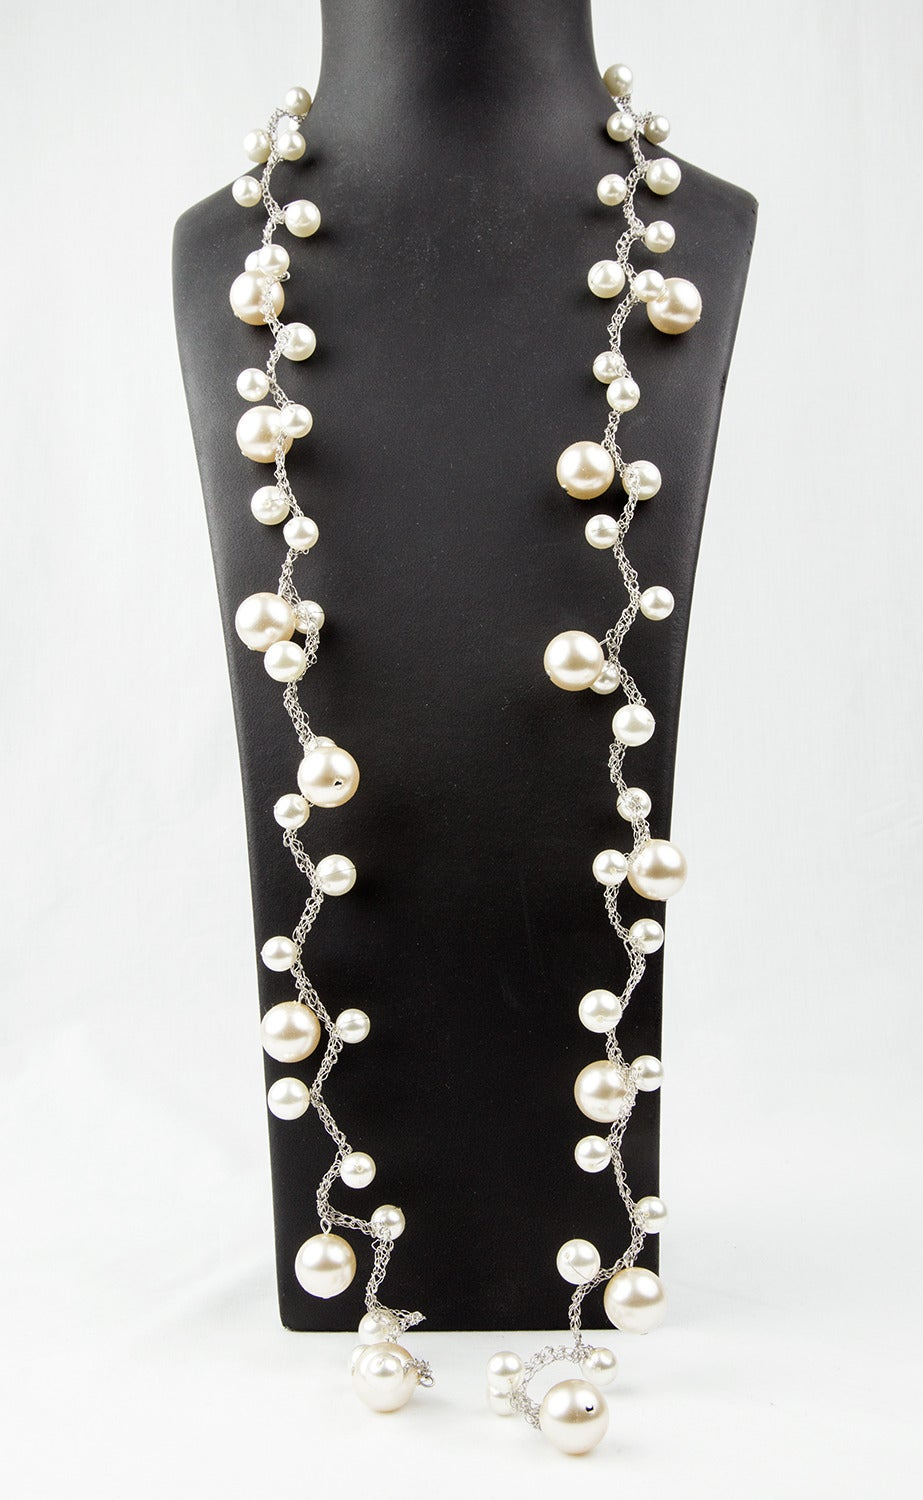 hight resolution of pearl magic long and elegant faux pearl necklace made of graduated round faux pearls on